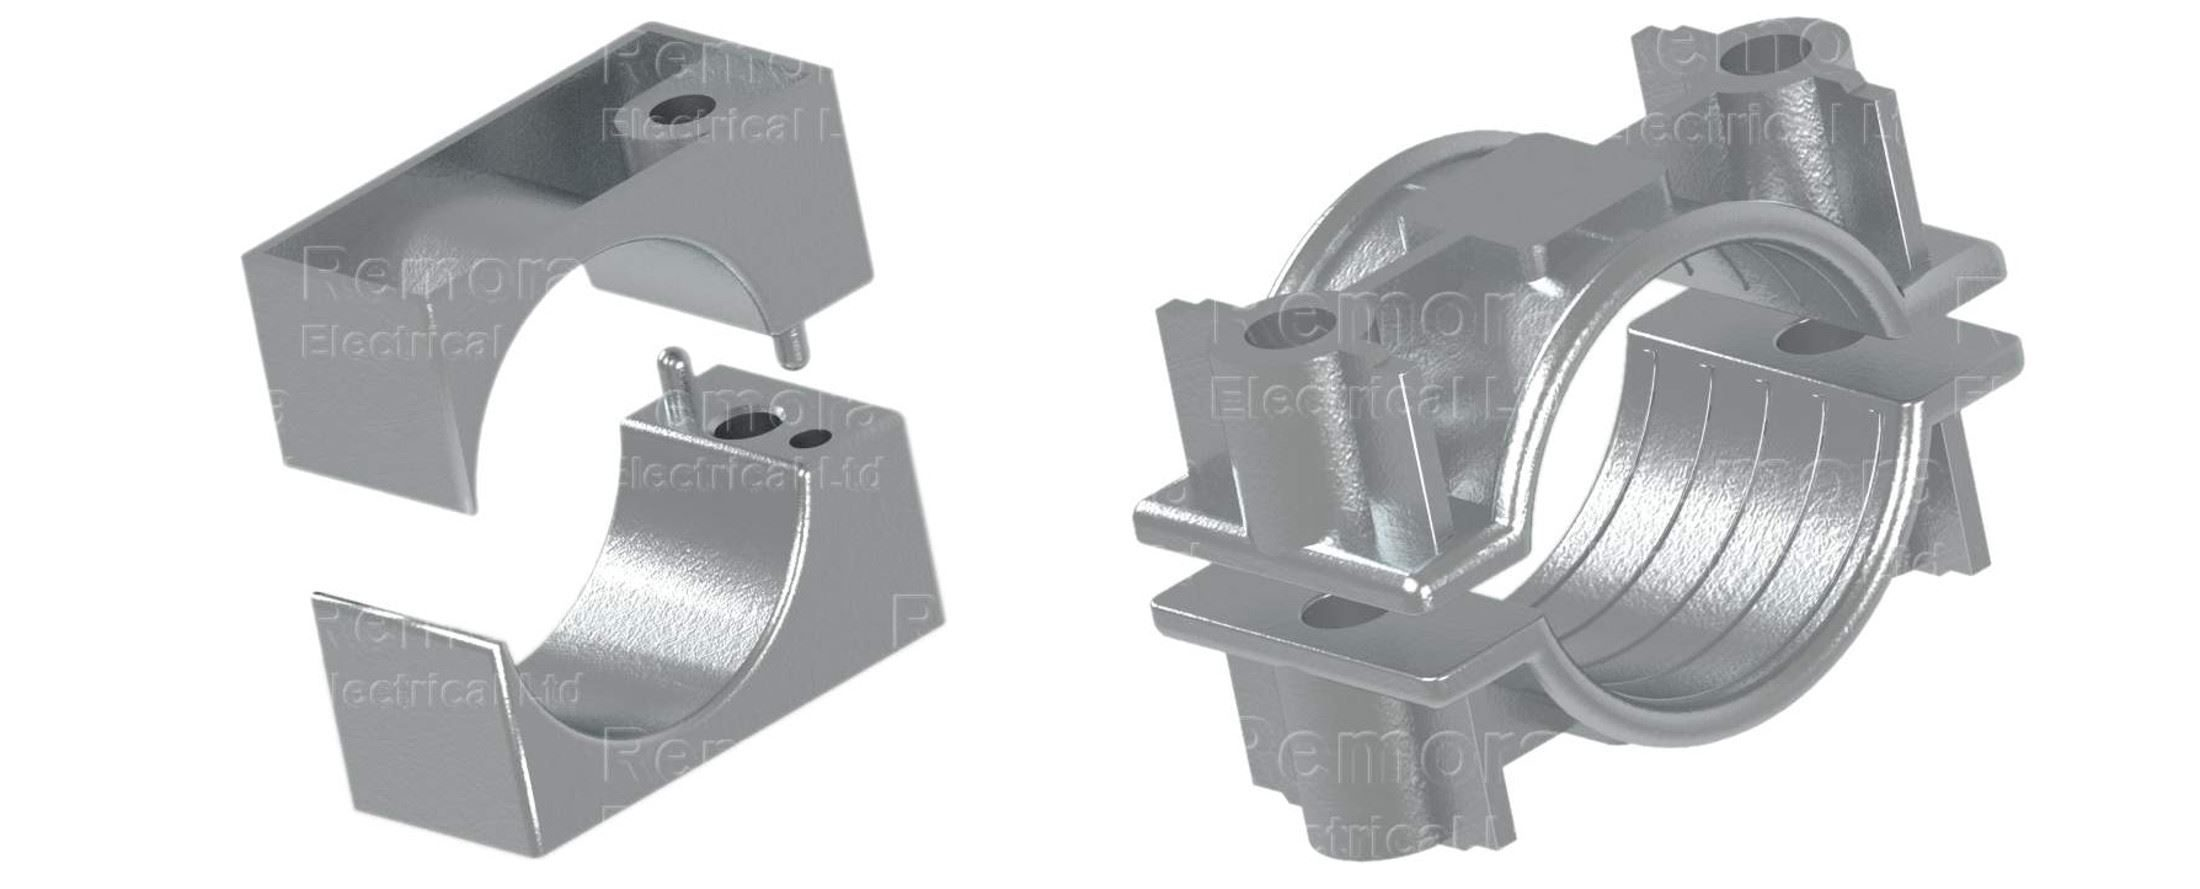 cleats metallic two part